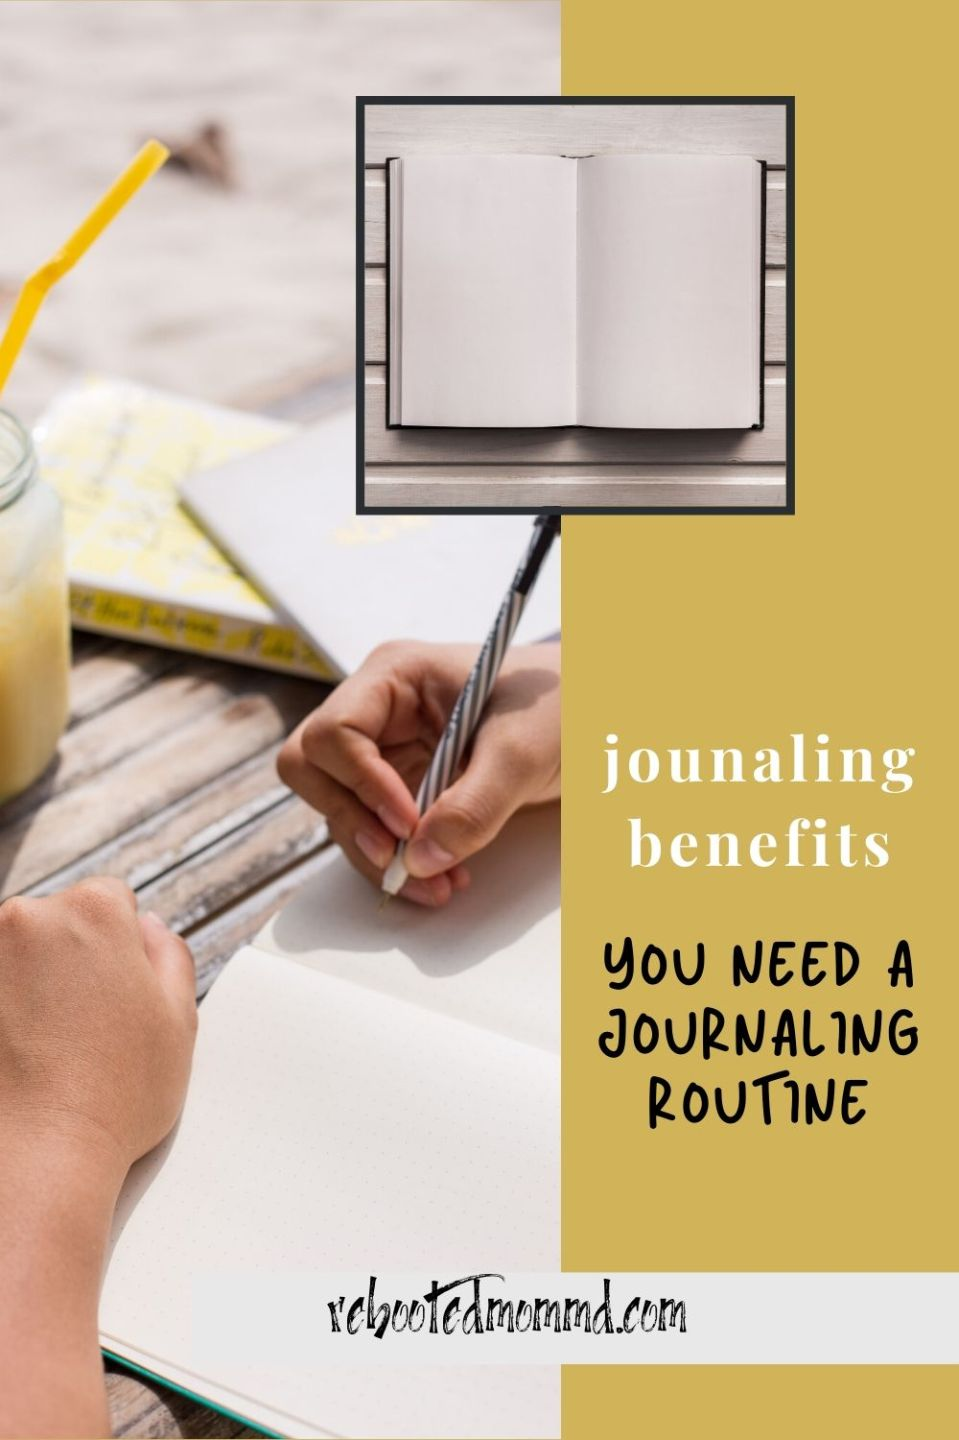 You Need Journaling Routines